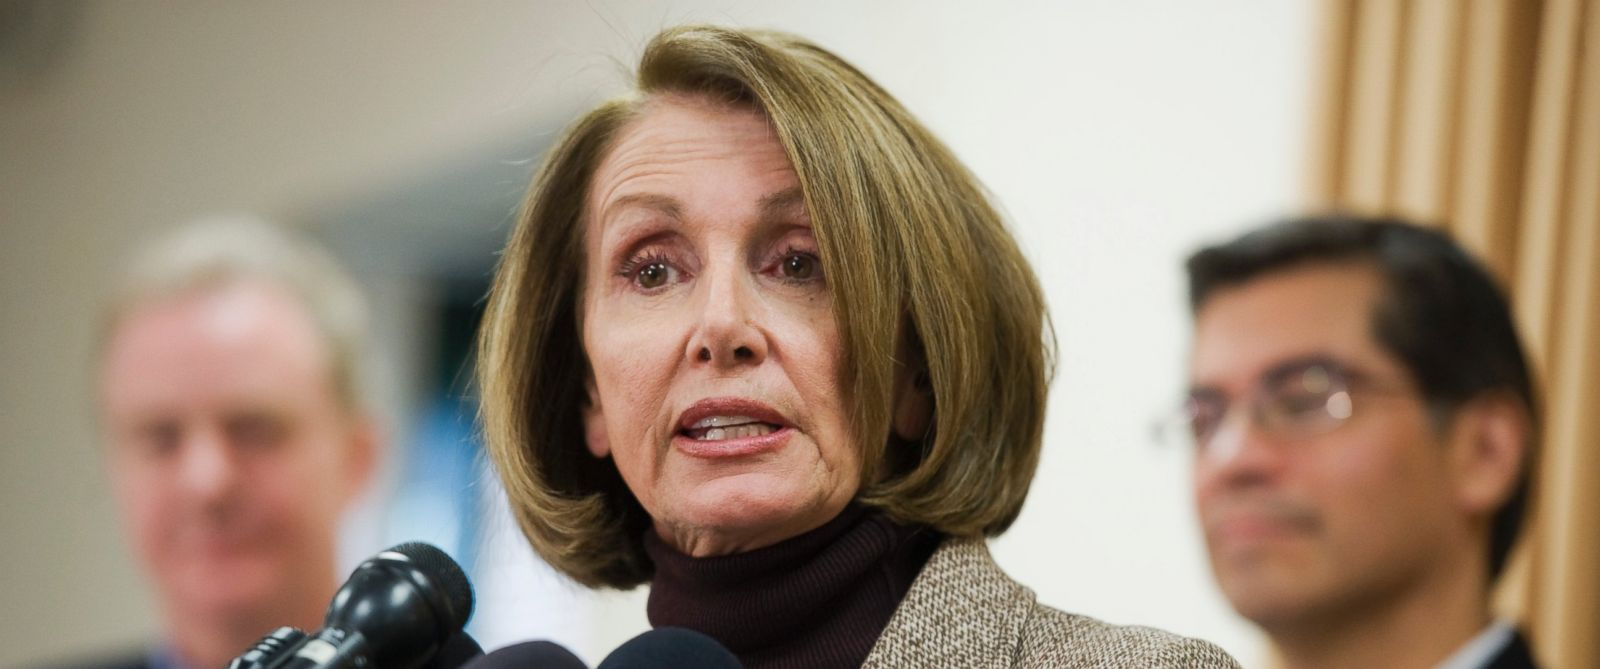 PHOTO: House Minority Leader Nancy Pelosi, D-Calif., speaks at a news conference on the second day of the House Democratic Caucus Issues Conference on Jan. 21, 2016 in Cambridge, Md.